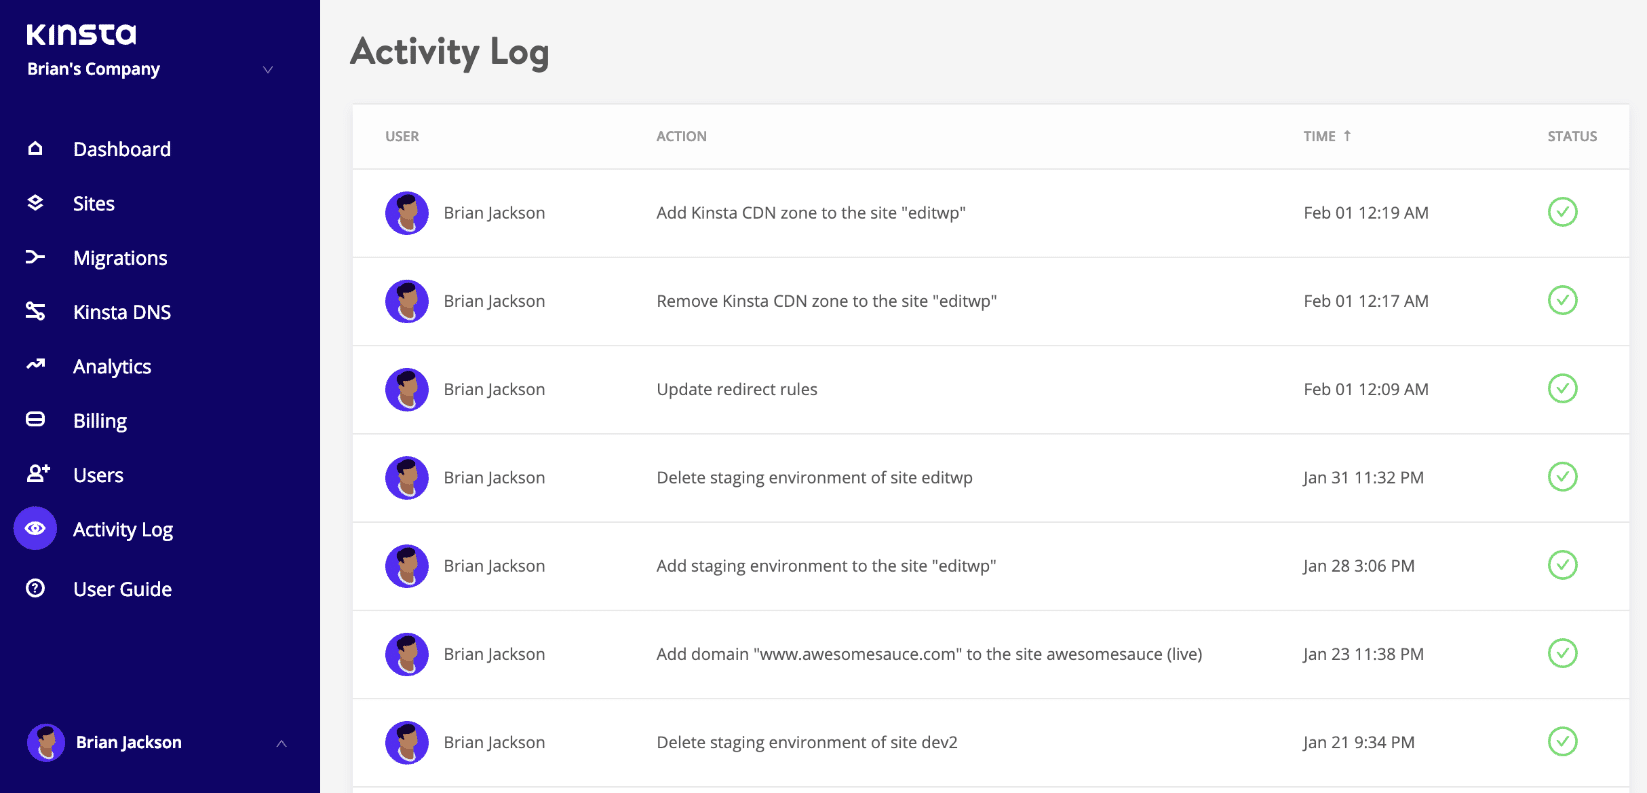 MyKinsta activity log